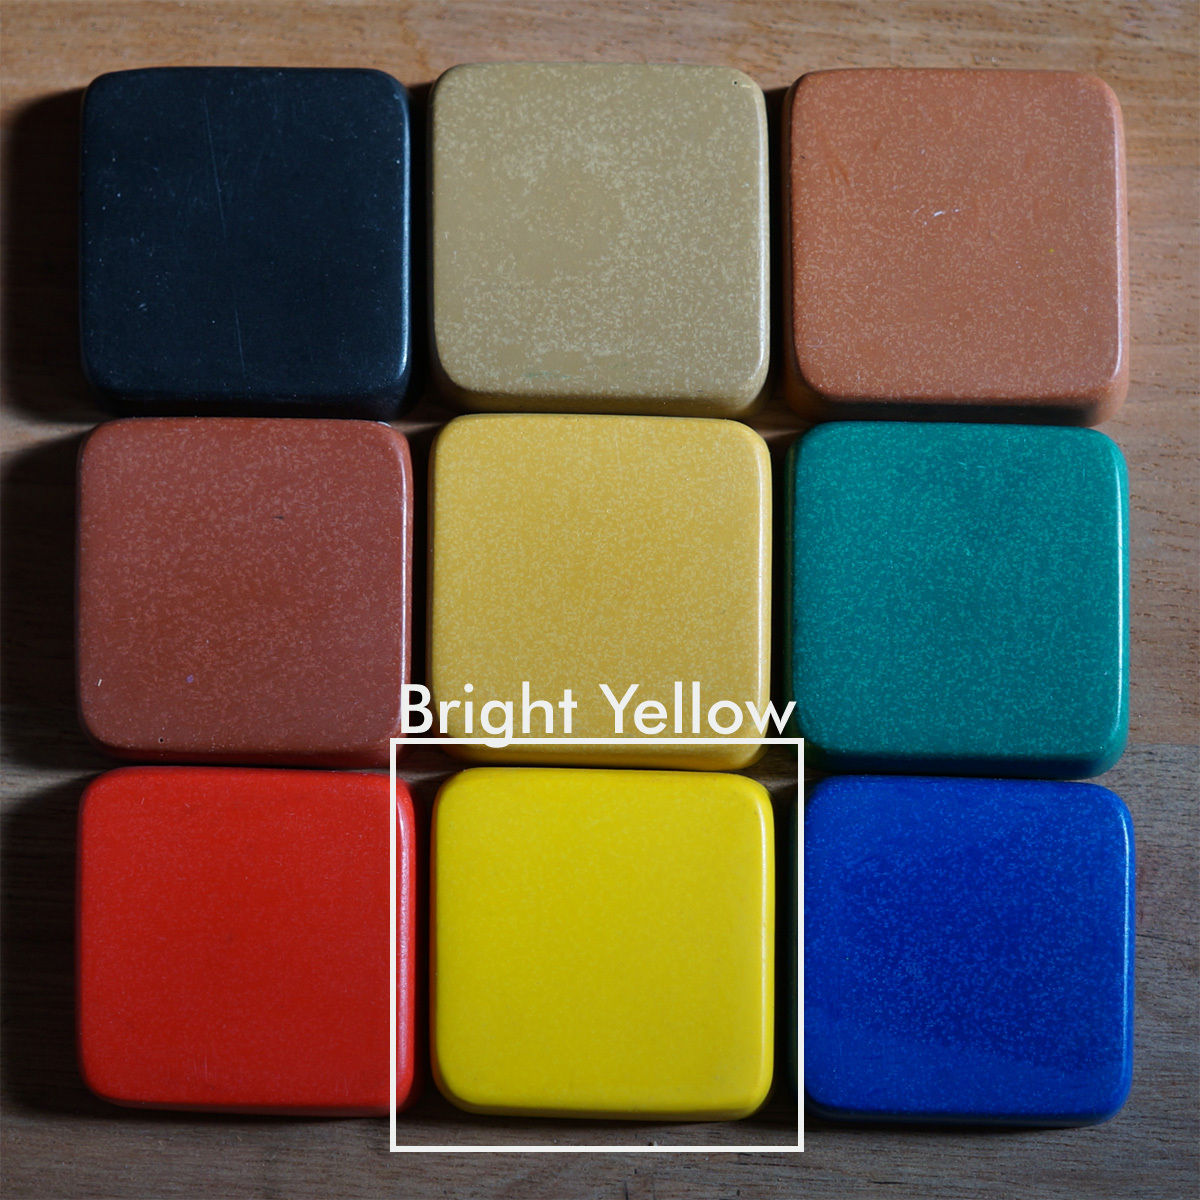 PIGMENT BRIGHT YELLOW 100g(着色剤:黄 100g) - 画像2